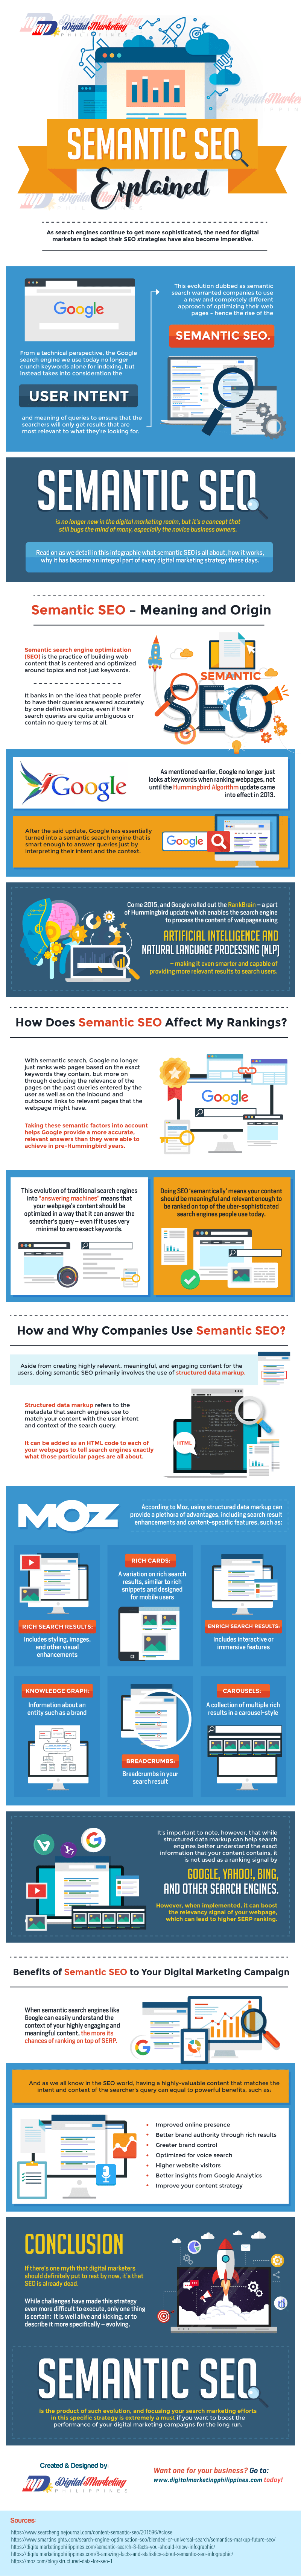 semantic seo